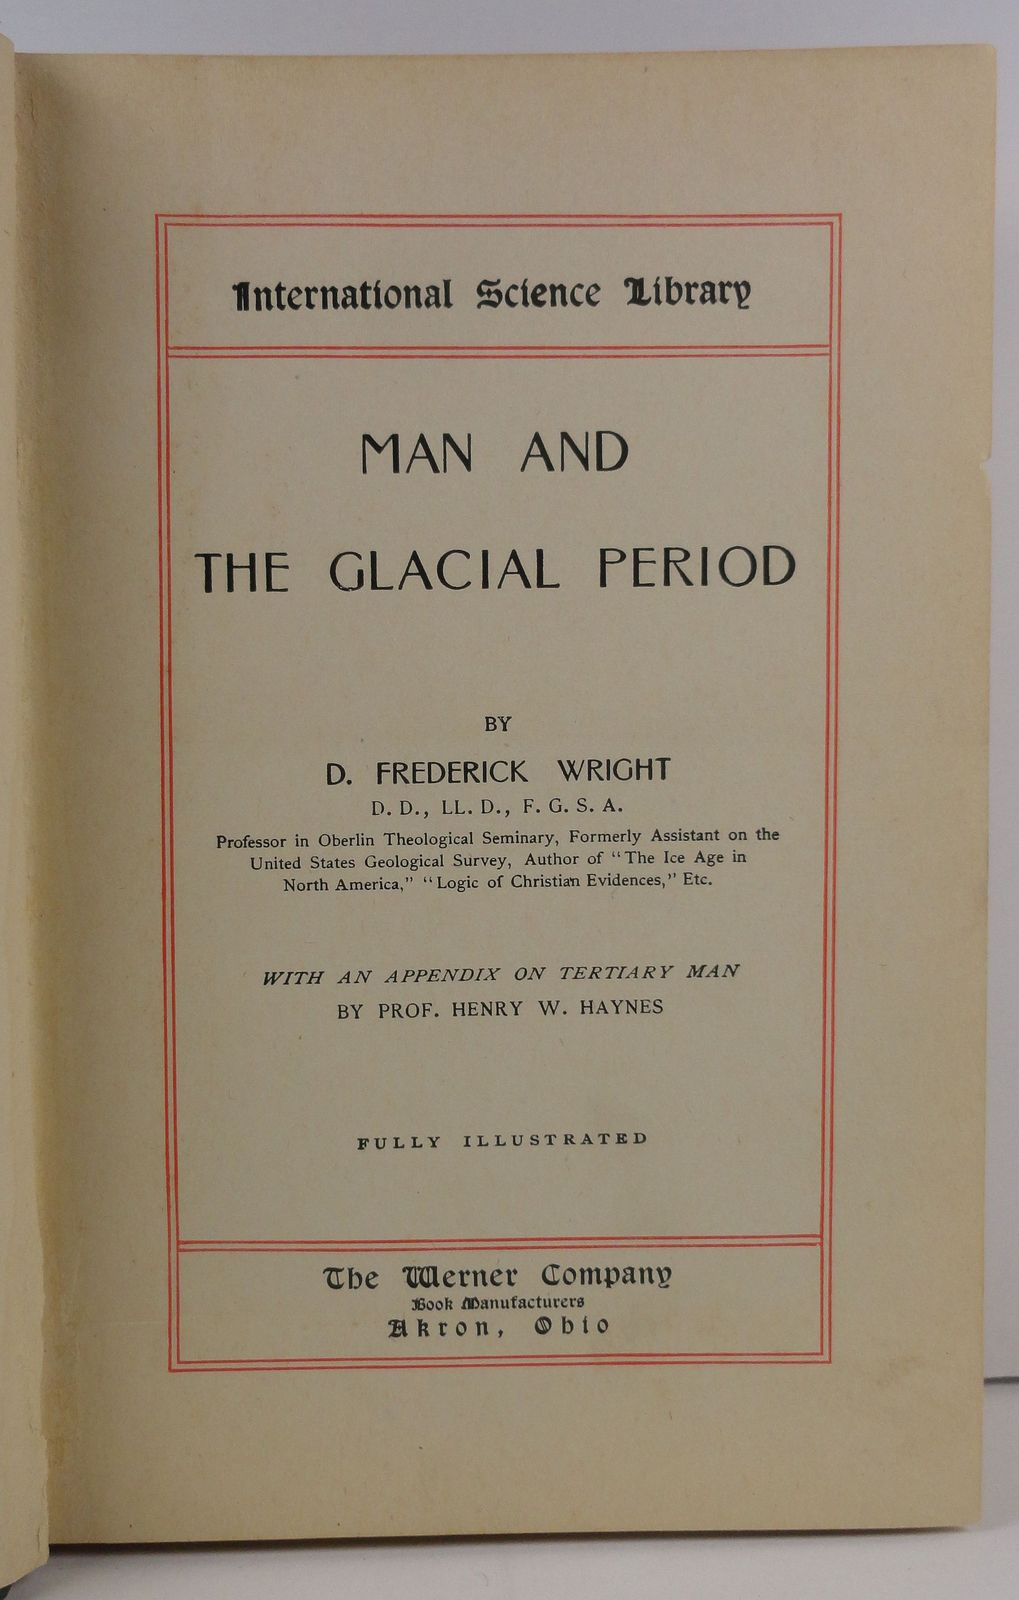 Man and The Glacial Period by D. Frederick Wright Werner Co